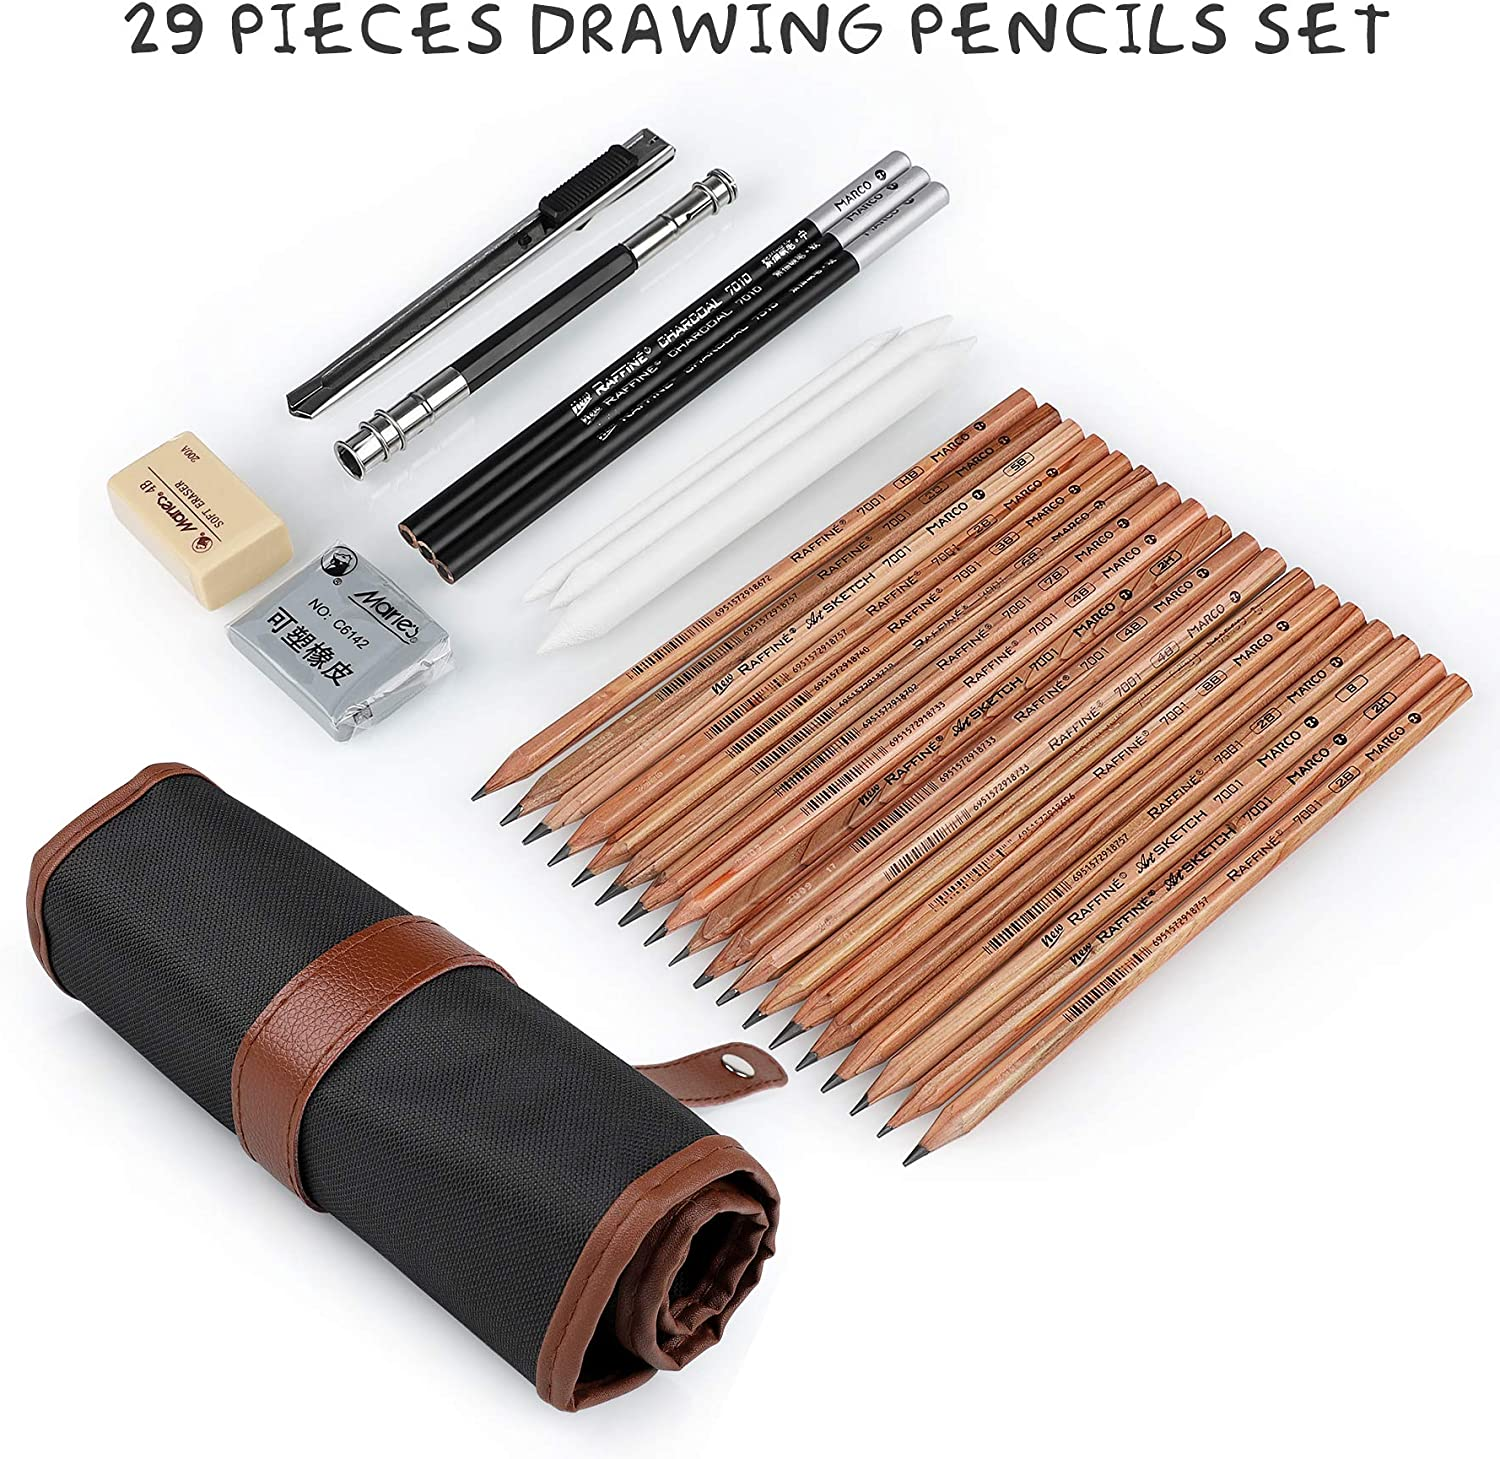 Yordawn Drawing Pencils Set Art Supplies 29 Pieces Sketch Pencils Kit with Graphite Pencils Charcoal Pencils Blending Stump Kneaded Eraser Sketching Pencils for Artists Beginners